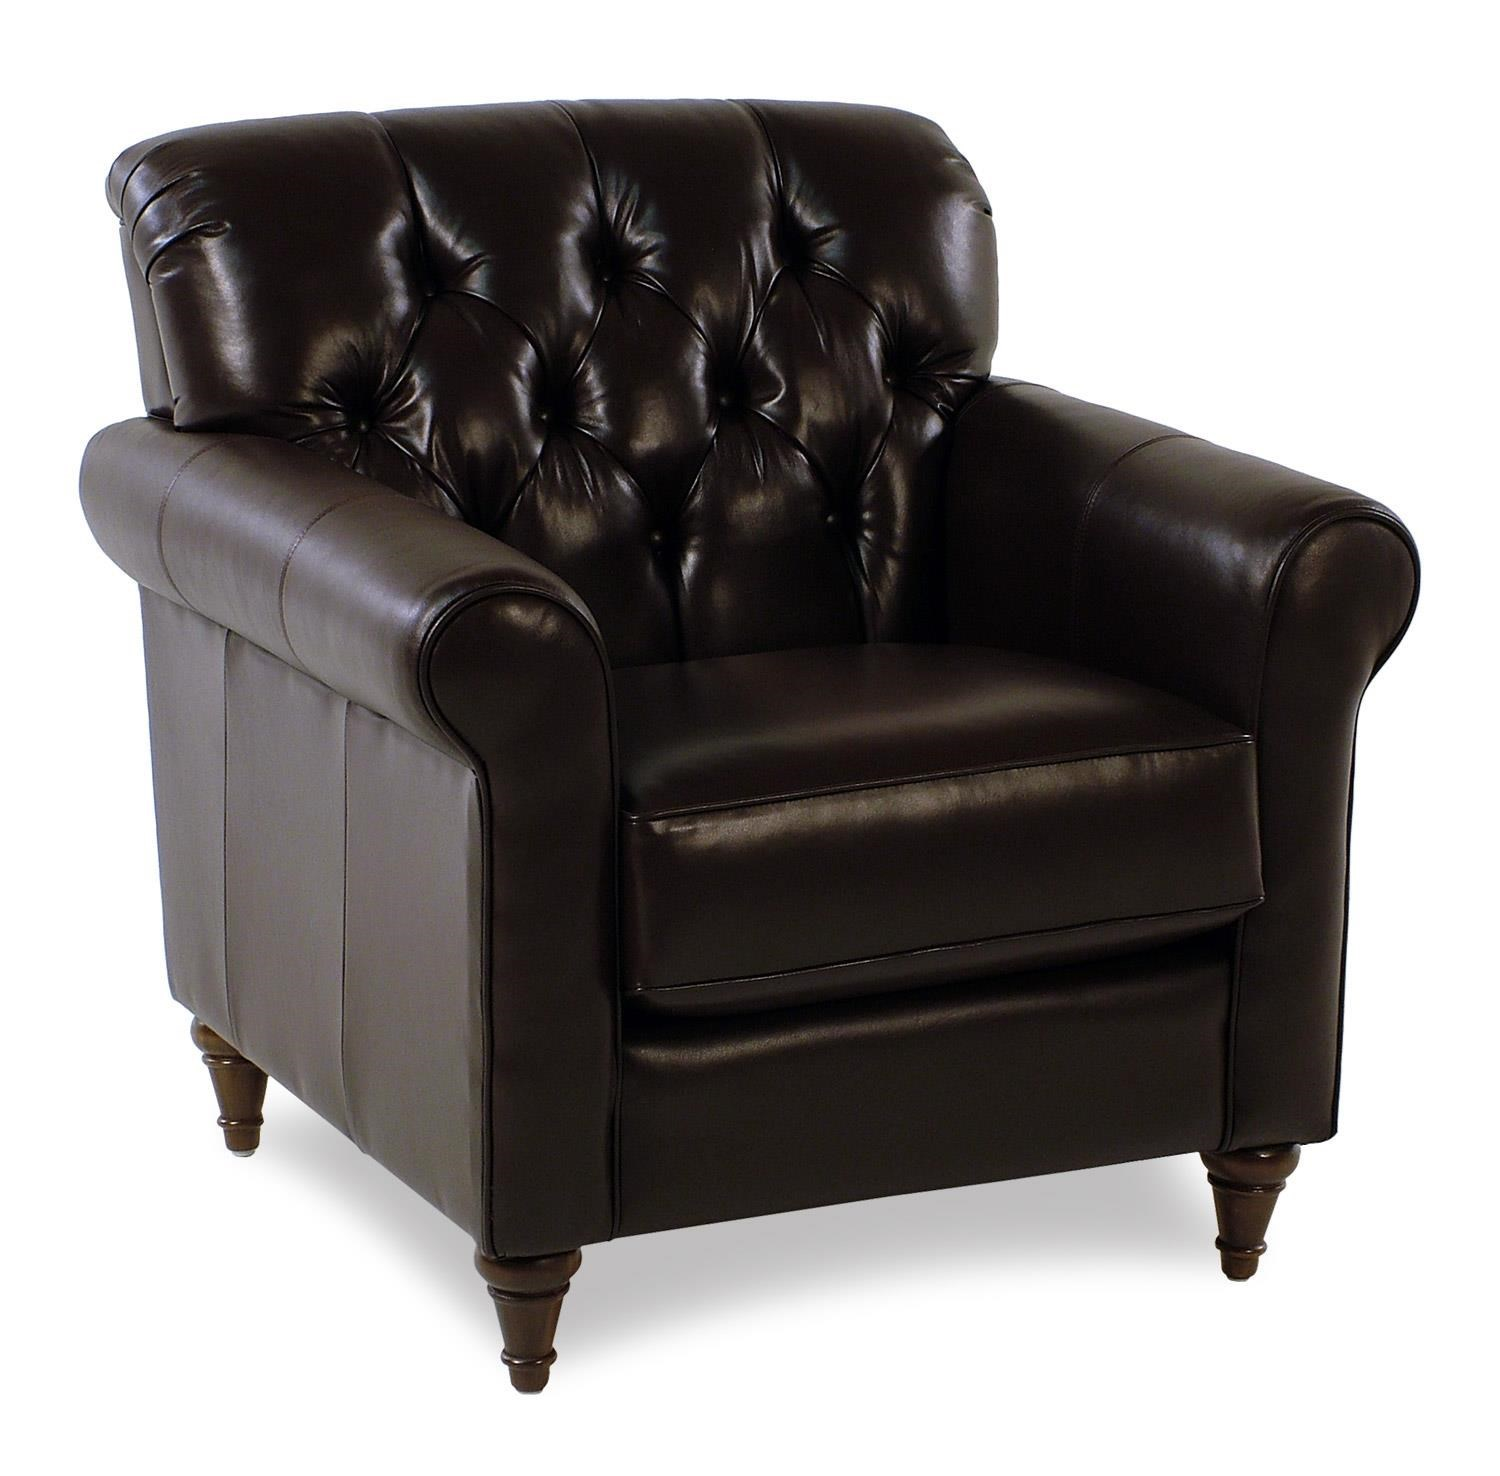 Decor Rest Maxwell Tufted Leather Chair